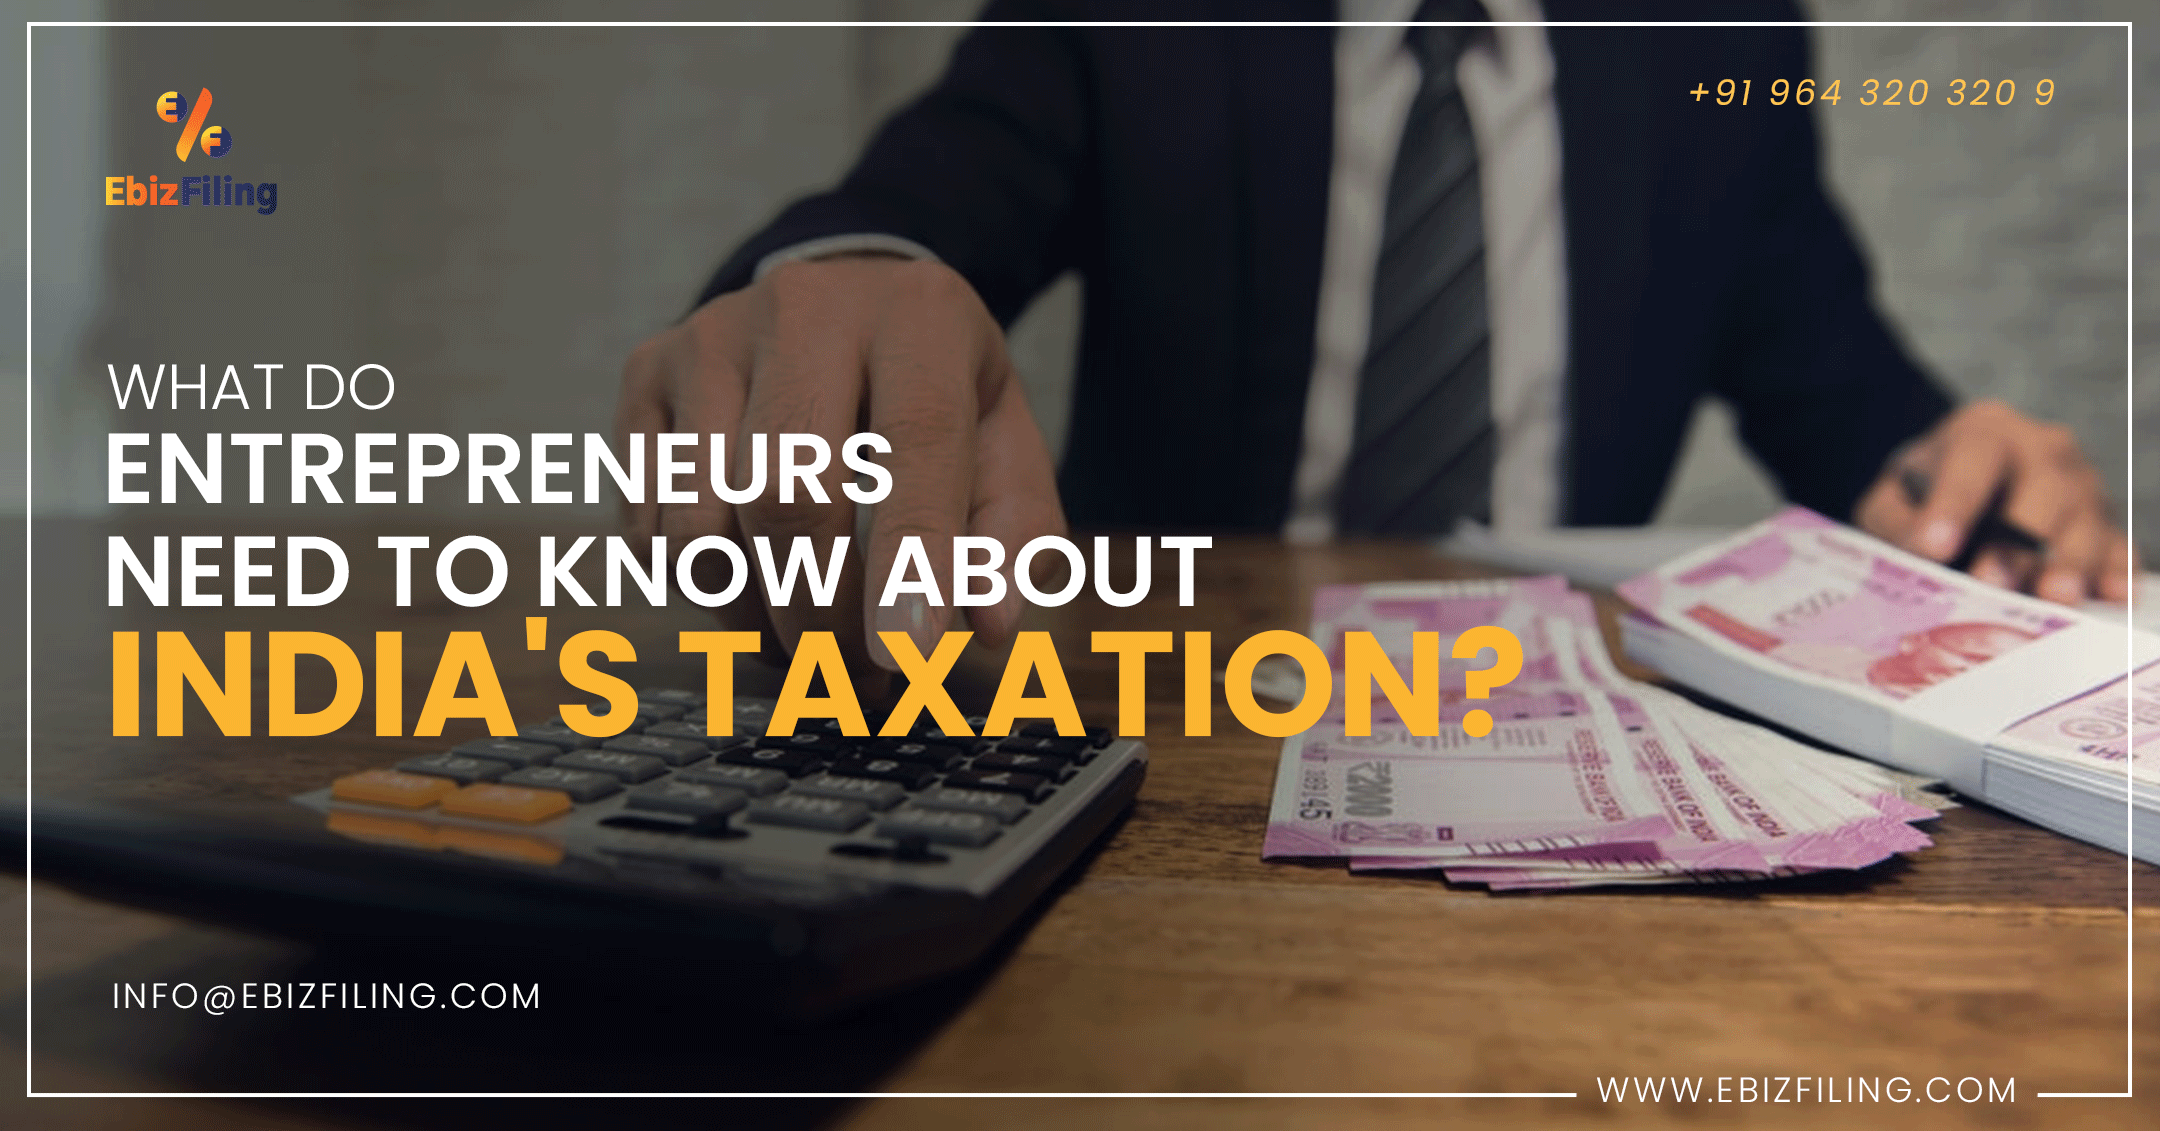 What Entrepreneurs Need to Know About Indias Taxation, Taxation In India, Income tax India, Entrrepreneurs in India, Ebizfiling